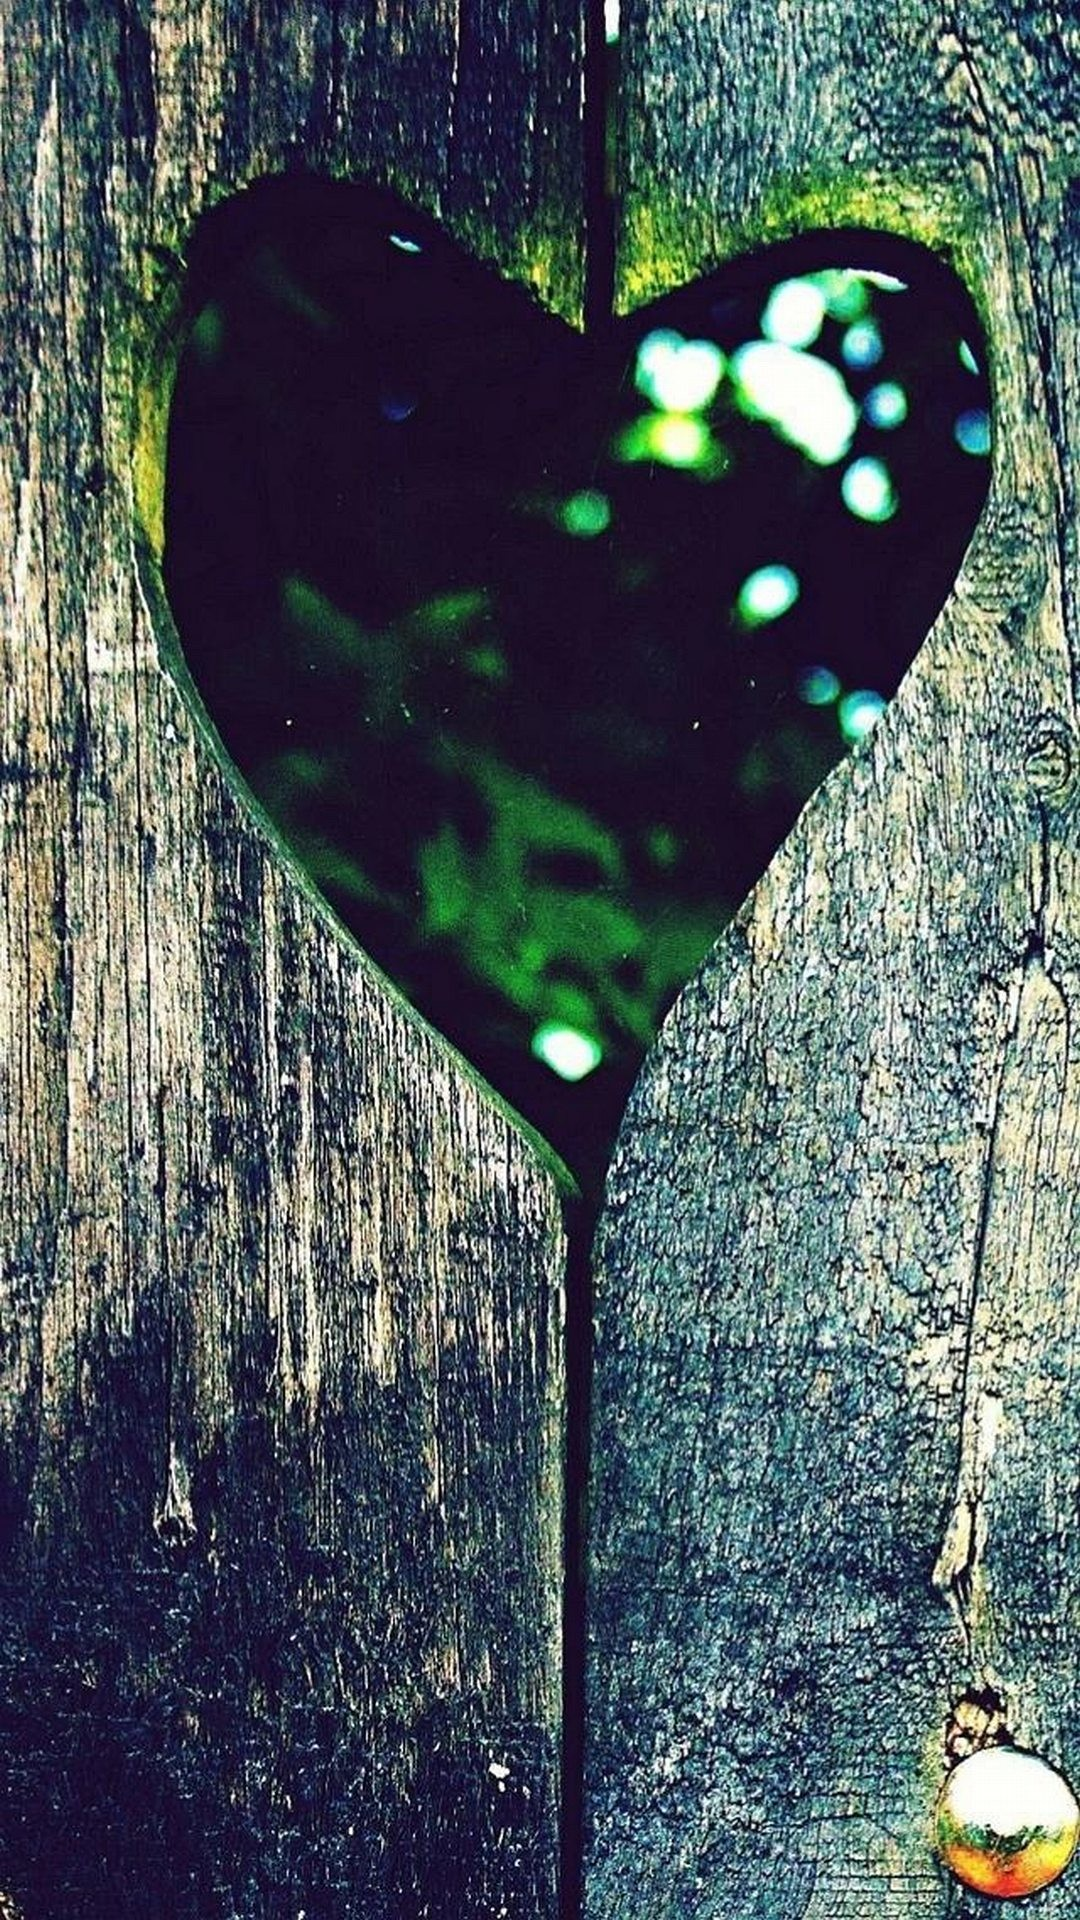 Tap image for more iPhone 6 & 6 Plus love wallpapers. Love and tree –